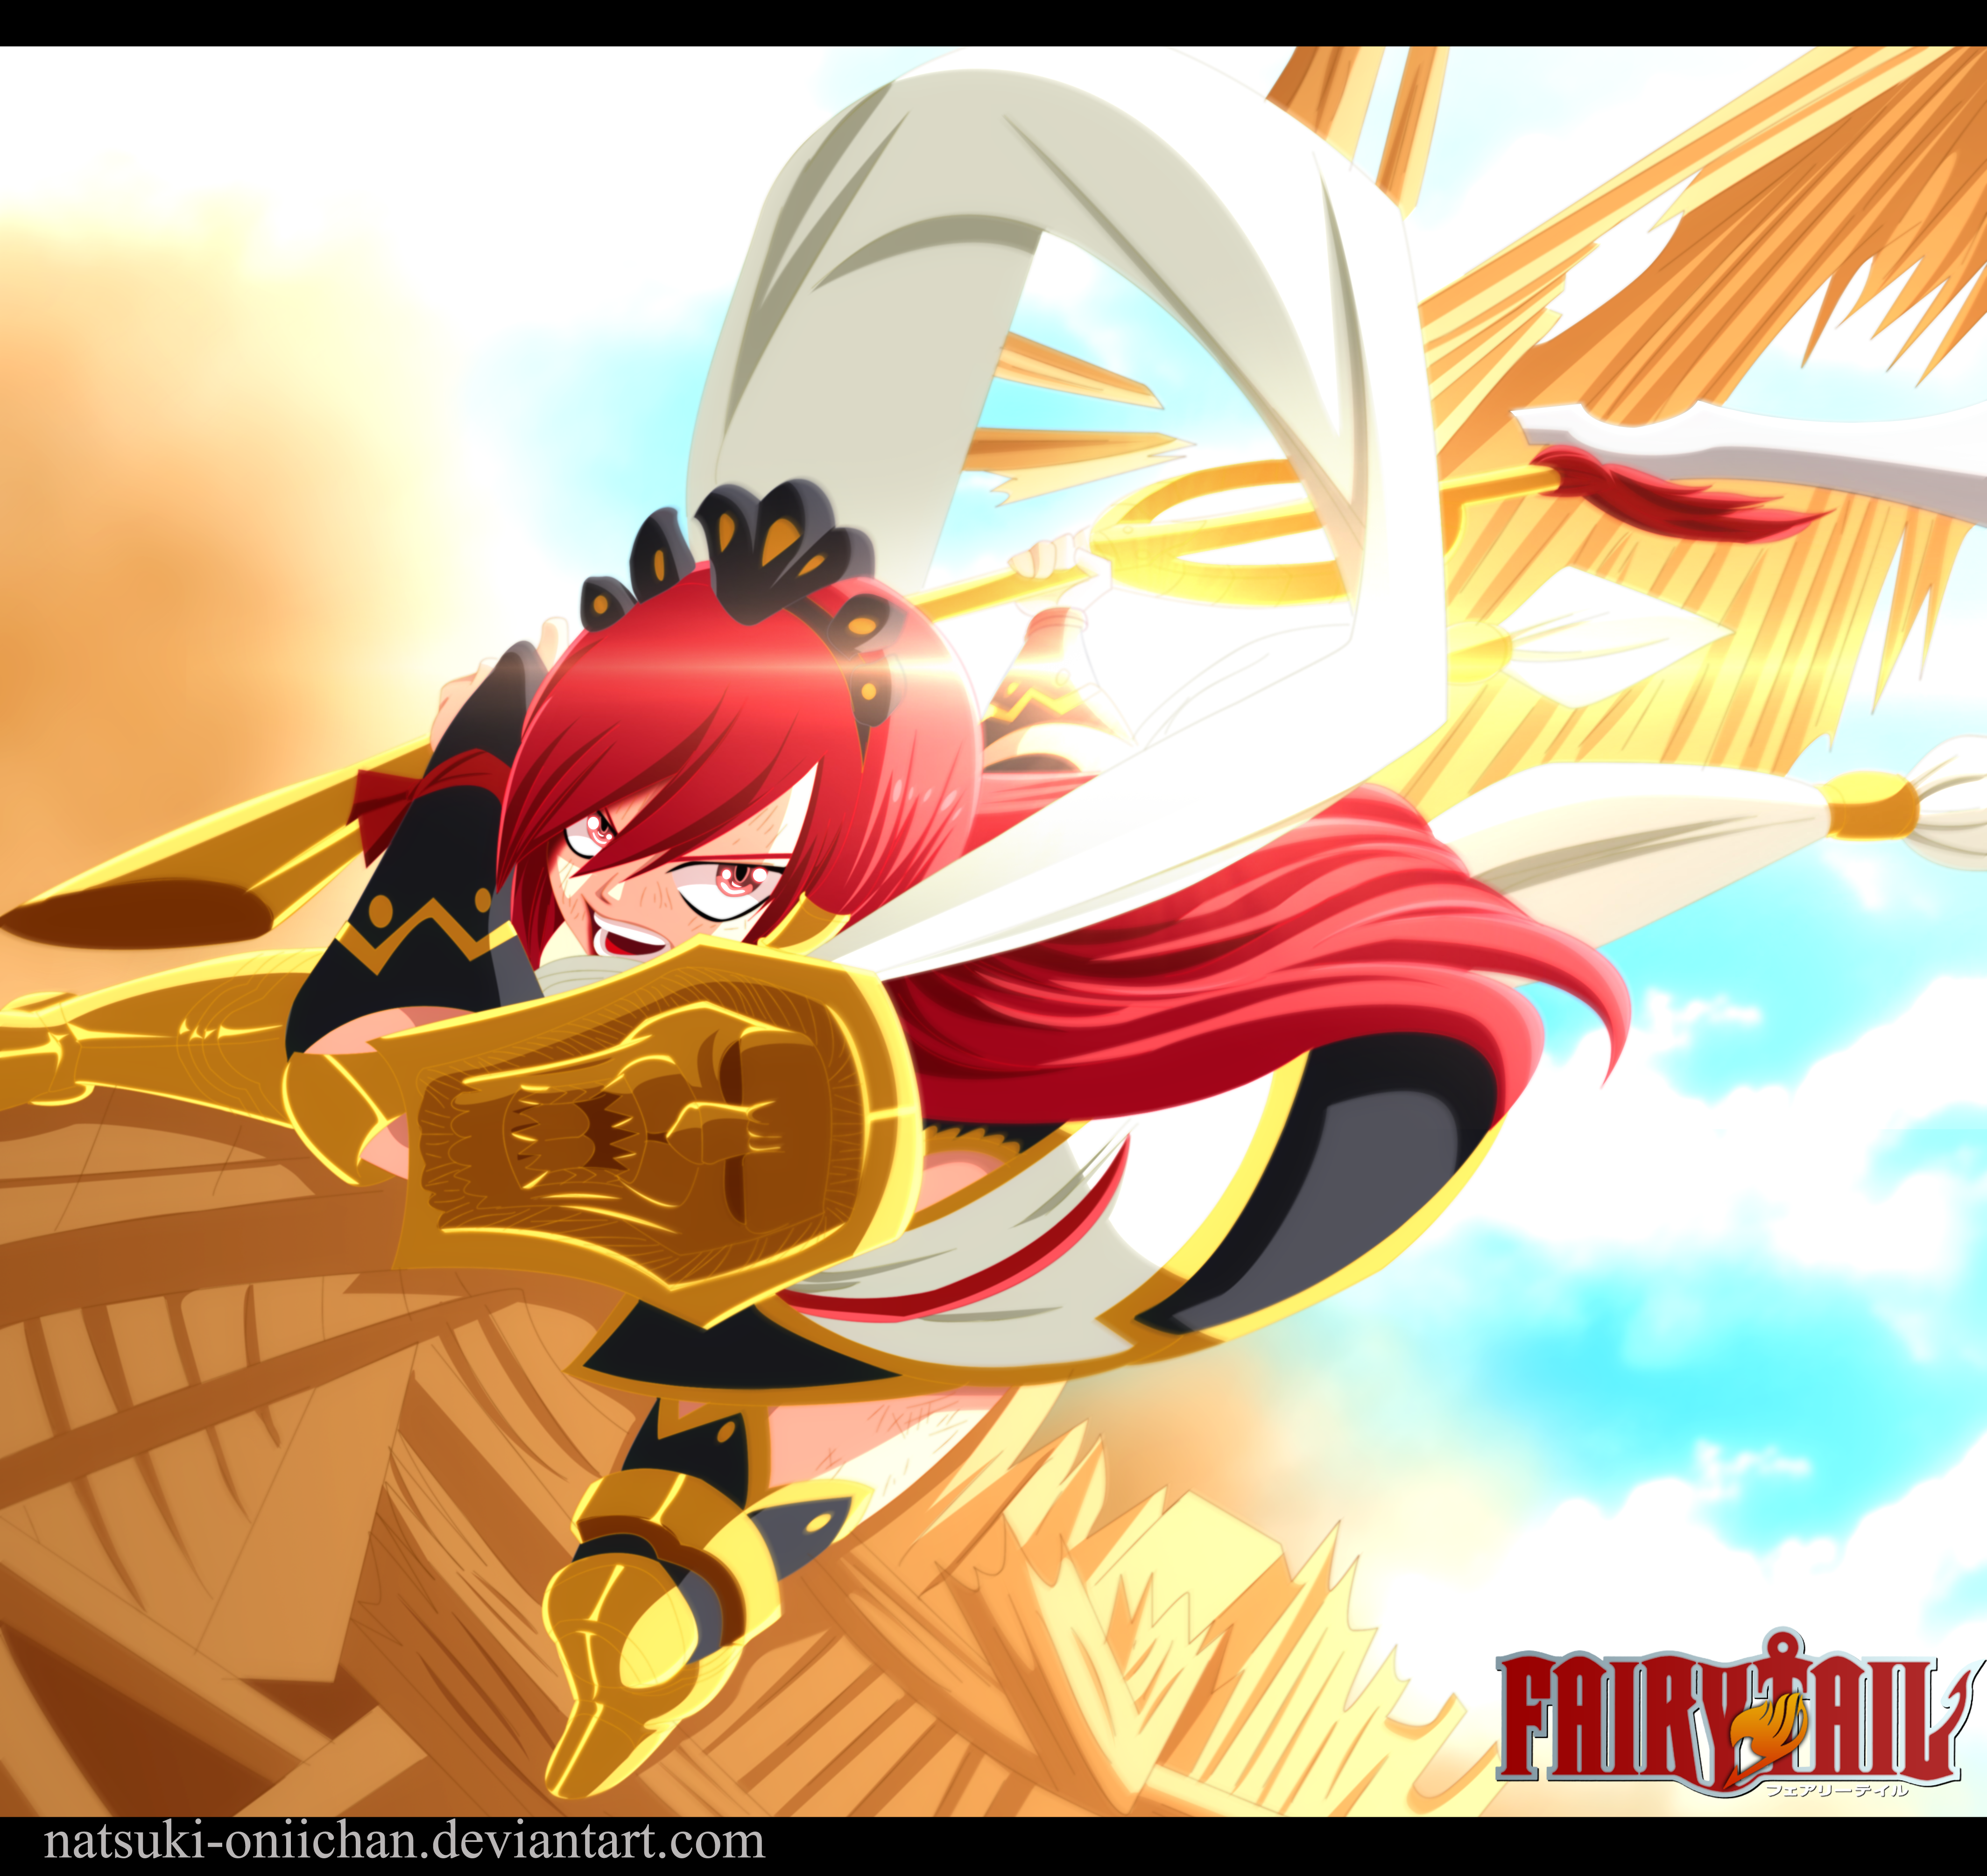 Erza defeats azir morning star fairy tail 458 daily - Image fairy tail erza ...